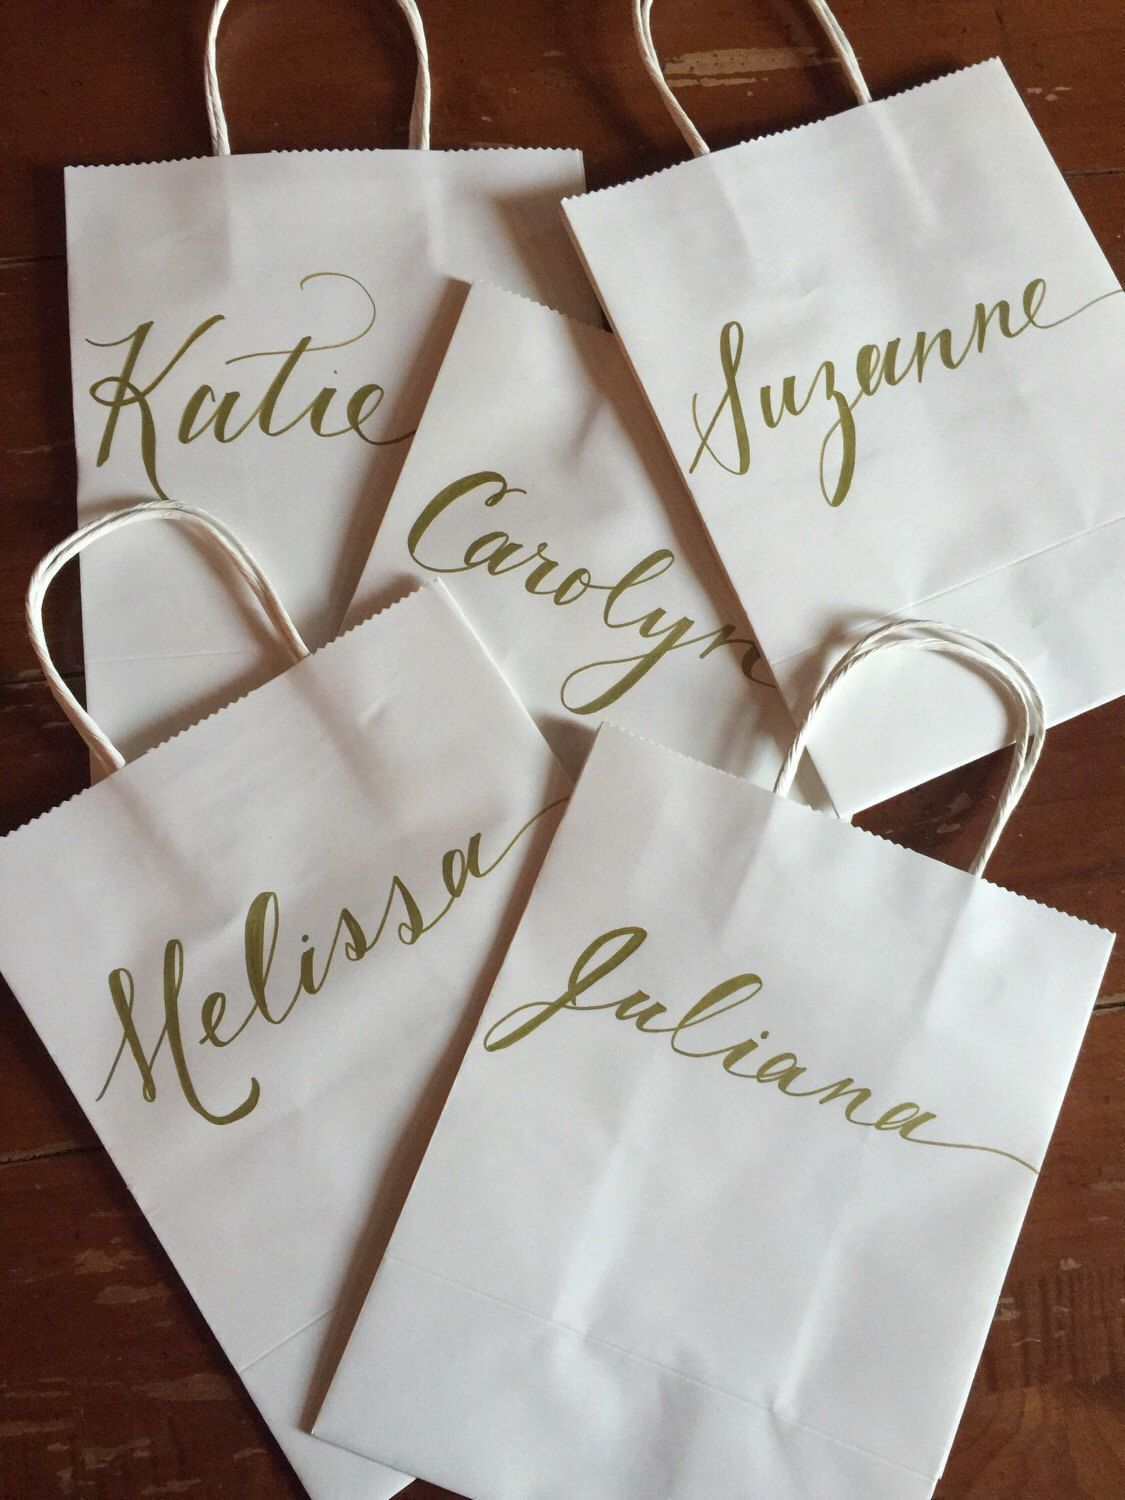 Bridesmaid Gift Bag Personalized White Gift Bag Etsy Personalized Gift Bags Bridal Party Gift Bag Bridesmaid Gifts